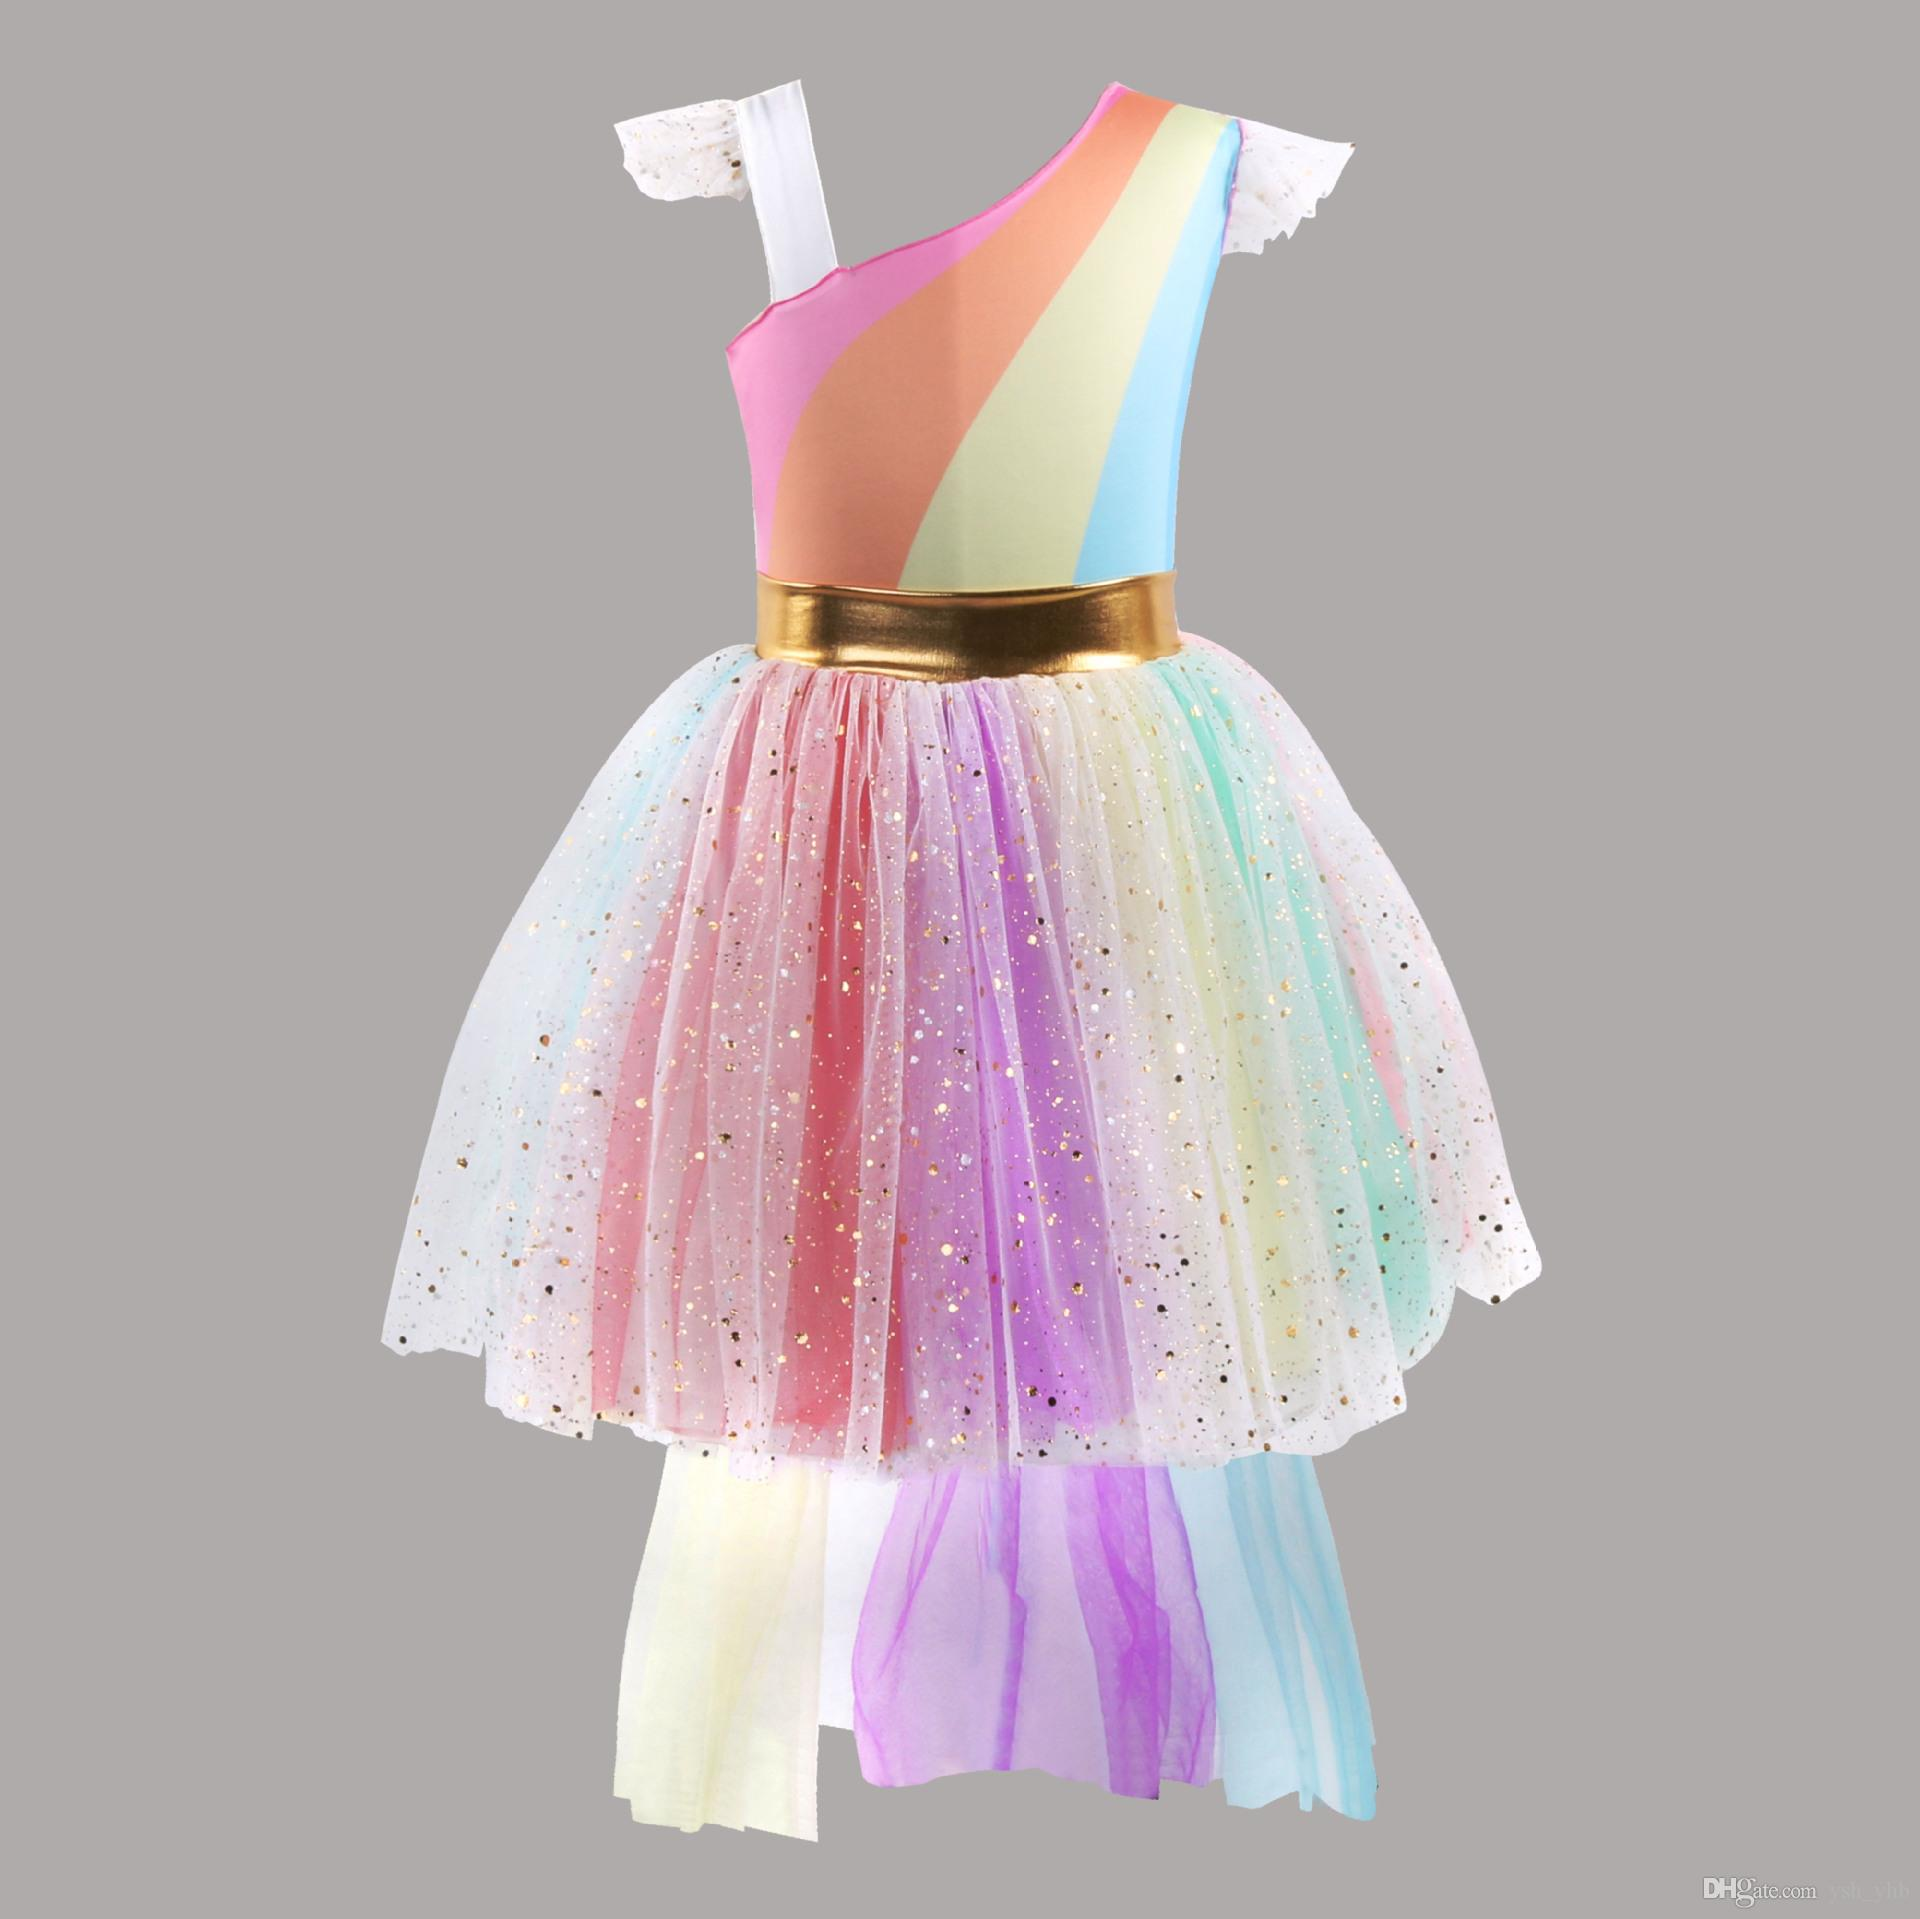 8b7fd7e61d0 2019 Girls Colorful Sequined Unicorn Dress Slanting Rainbow Lace Tutu Tulle  Skirt Girls Summer Clothes Dresses For Baby Birthday Or Any Occasion From  ...